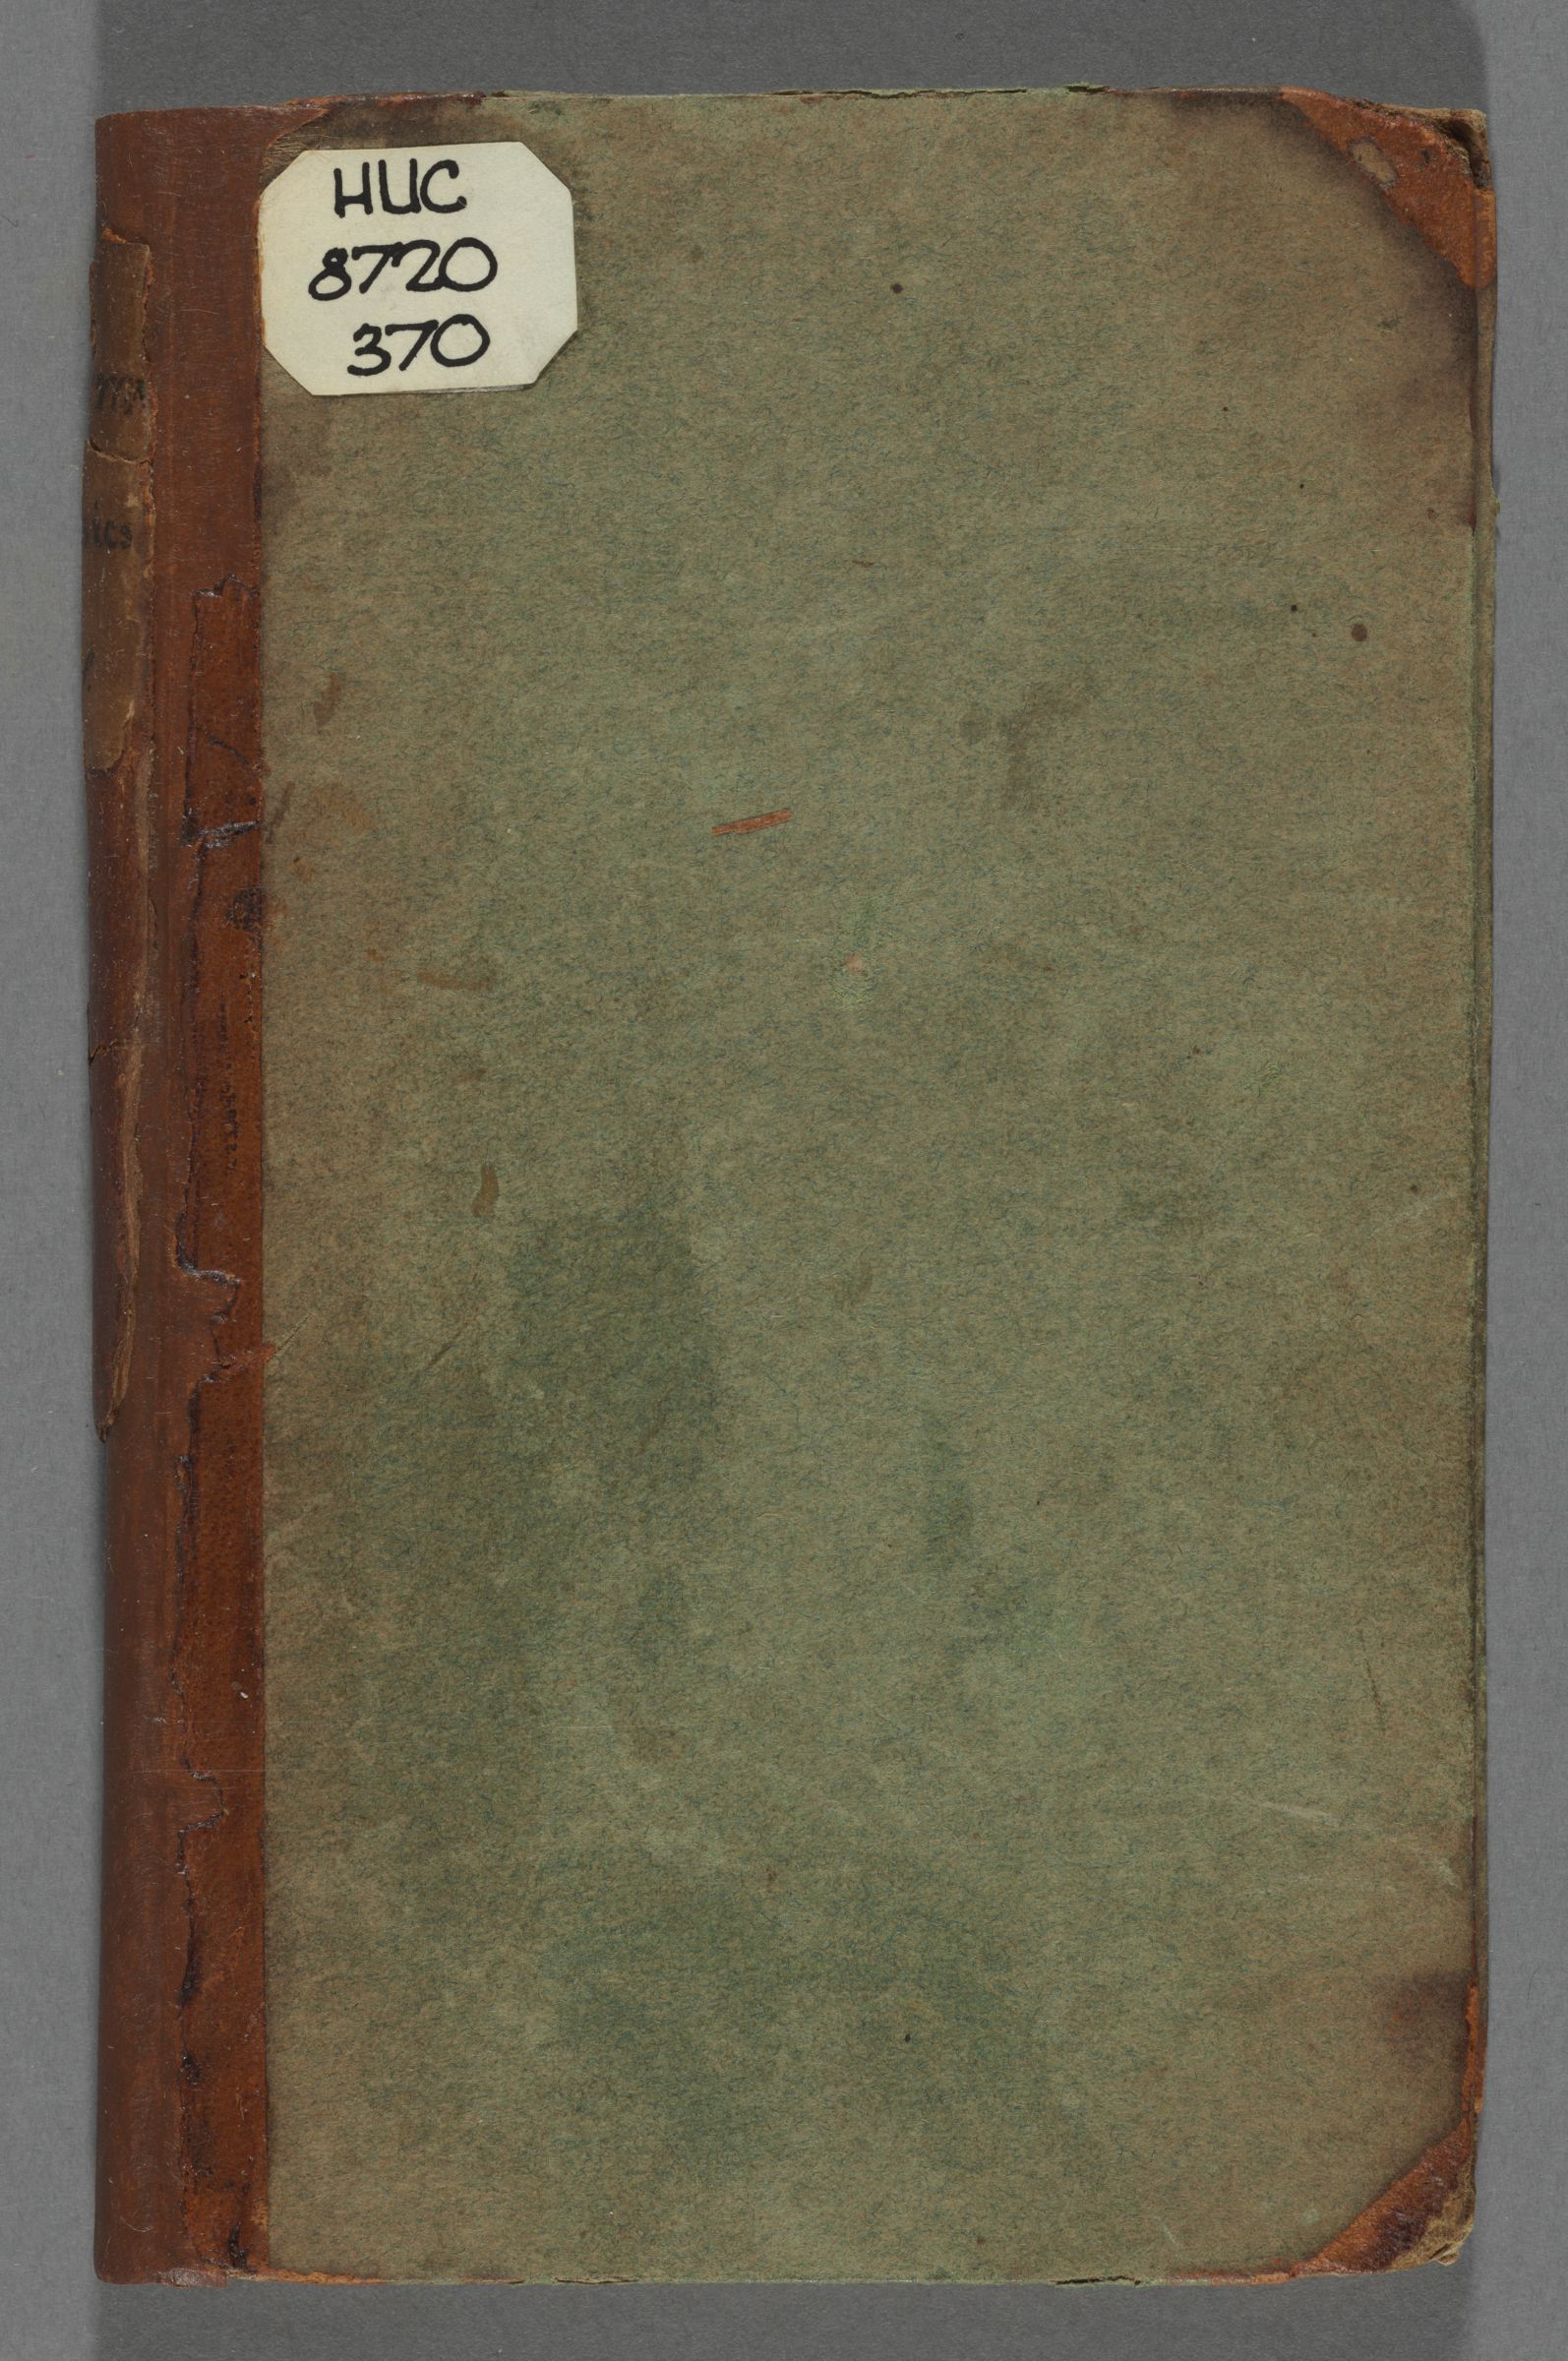 Student notebook of Ebenezer Parkman, 1720